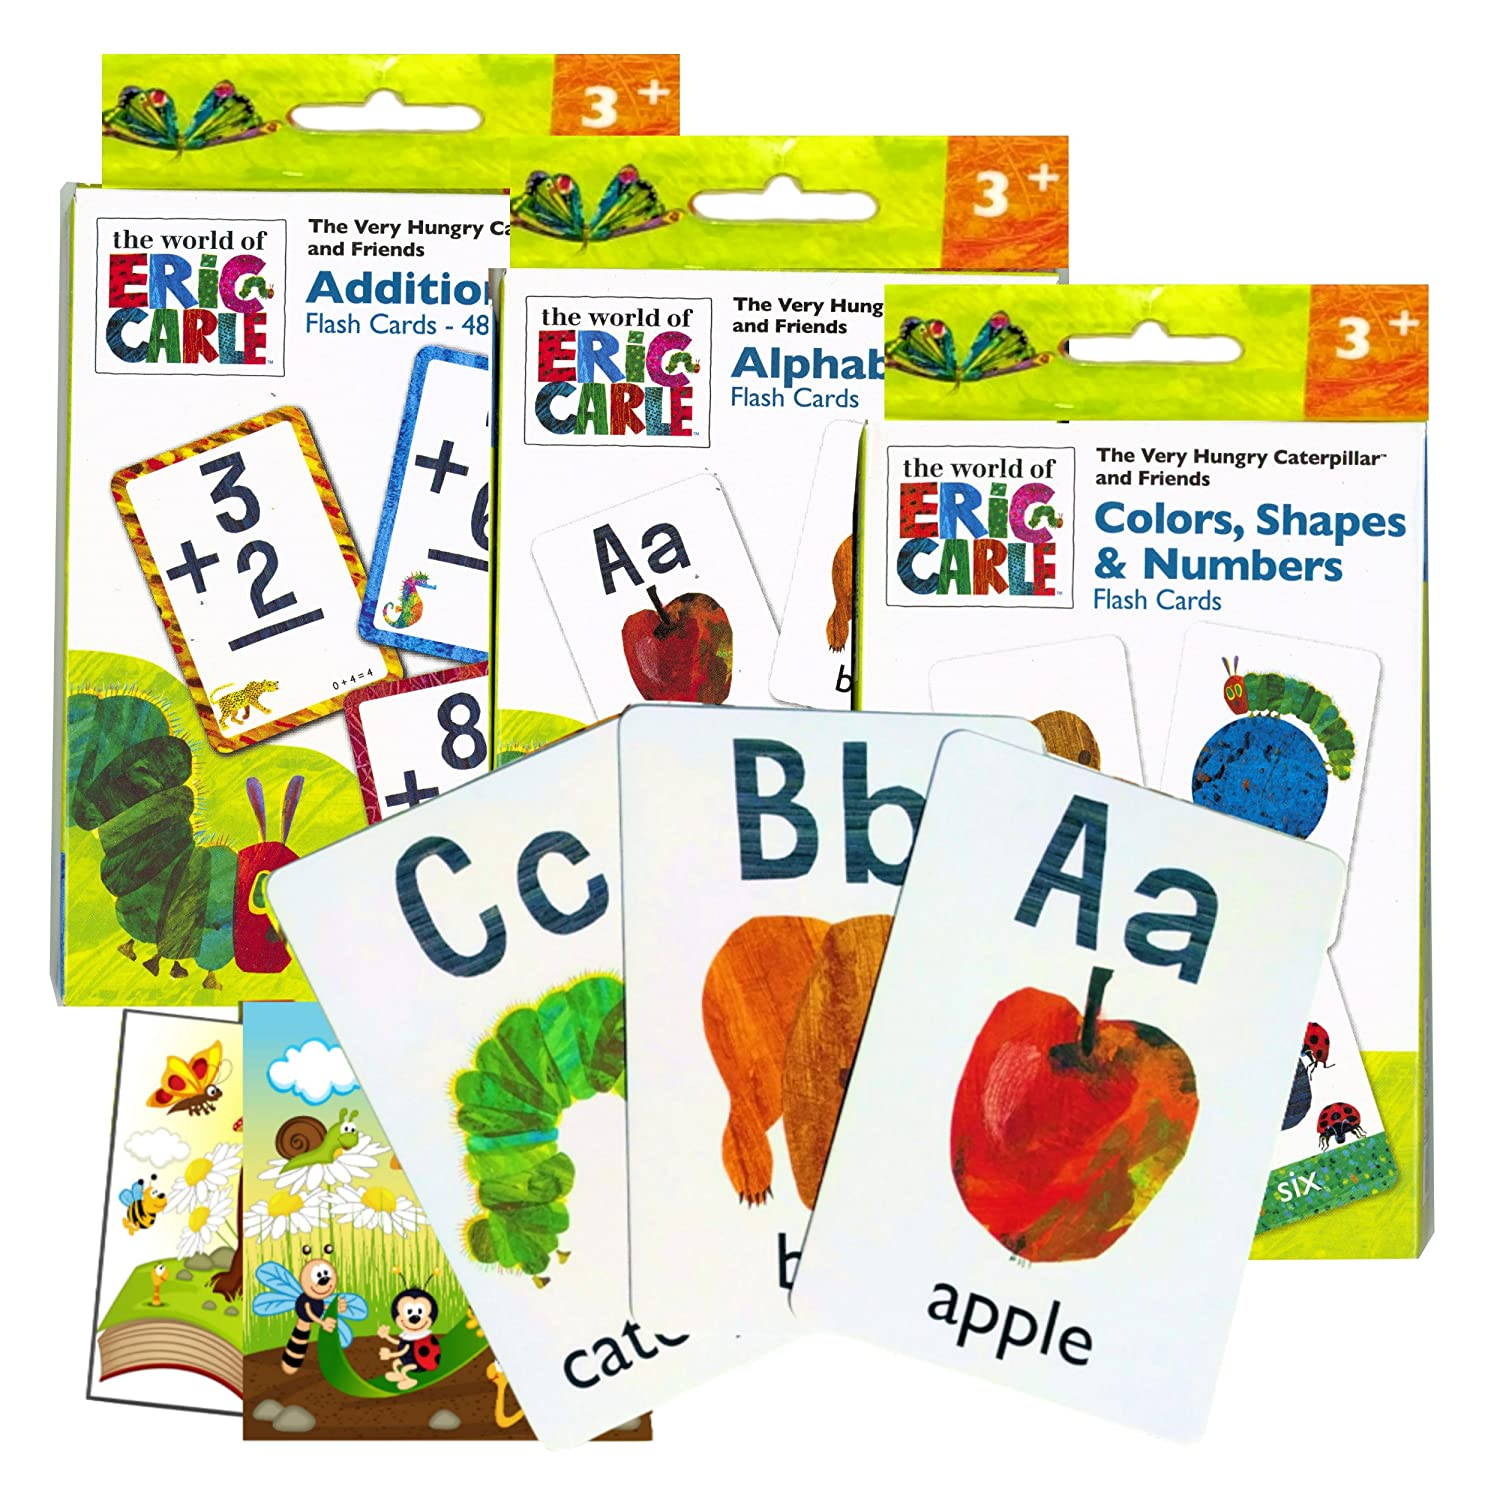 World of Eric Carle Flash Cards ~ ABC, Numbers, Colors, Shapes, and More! Plus 2 Bonus Reward Stickers